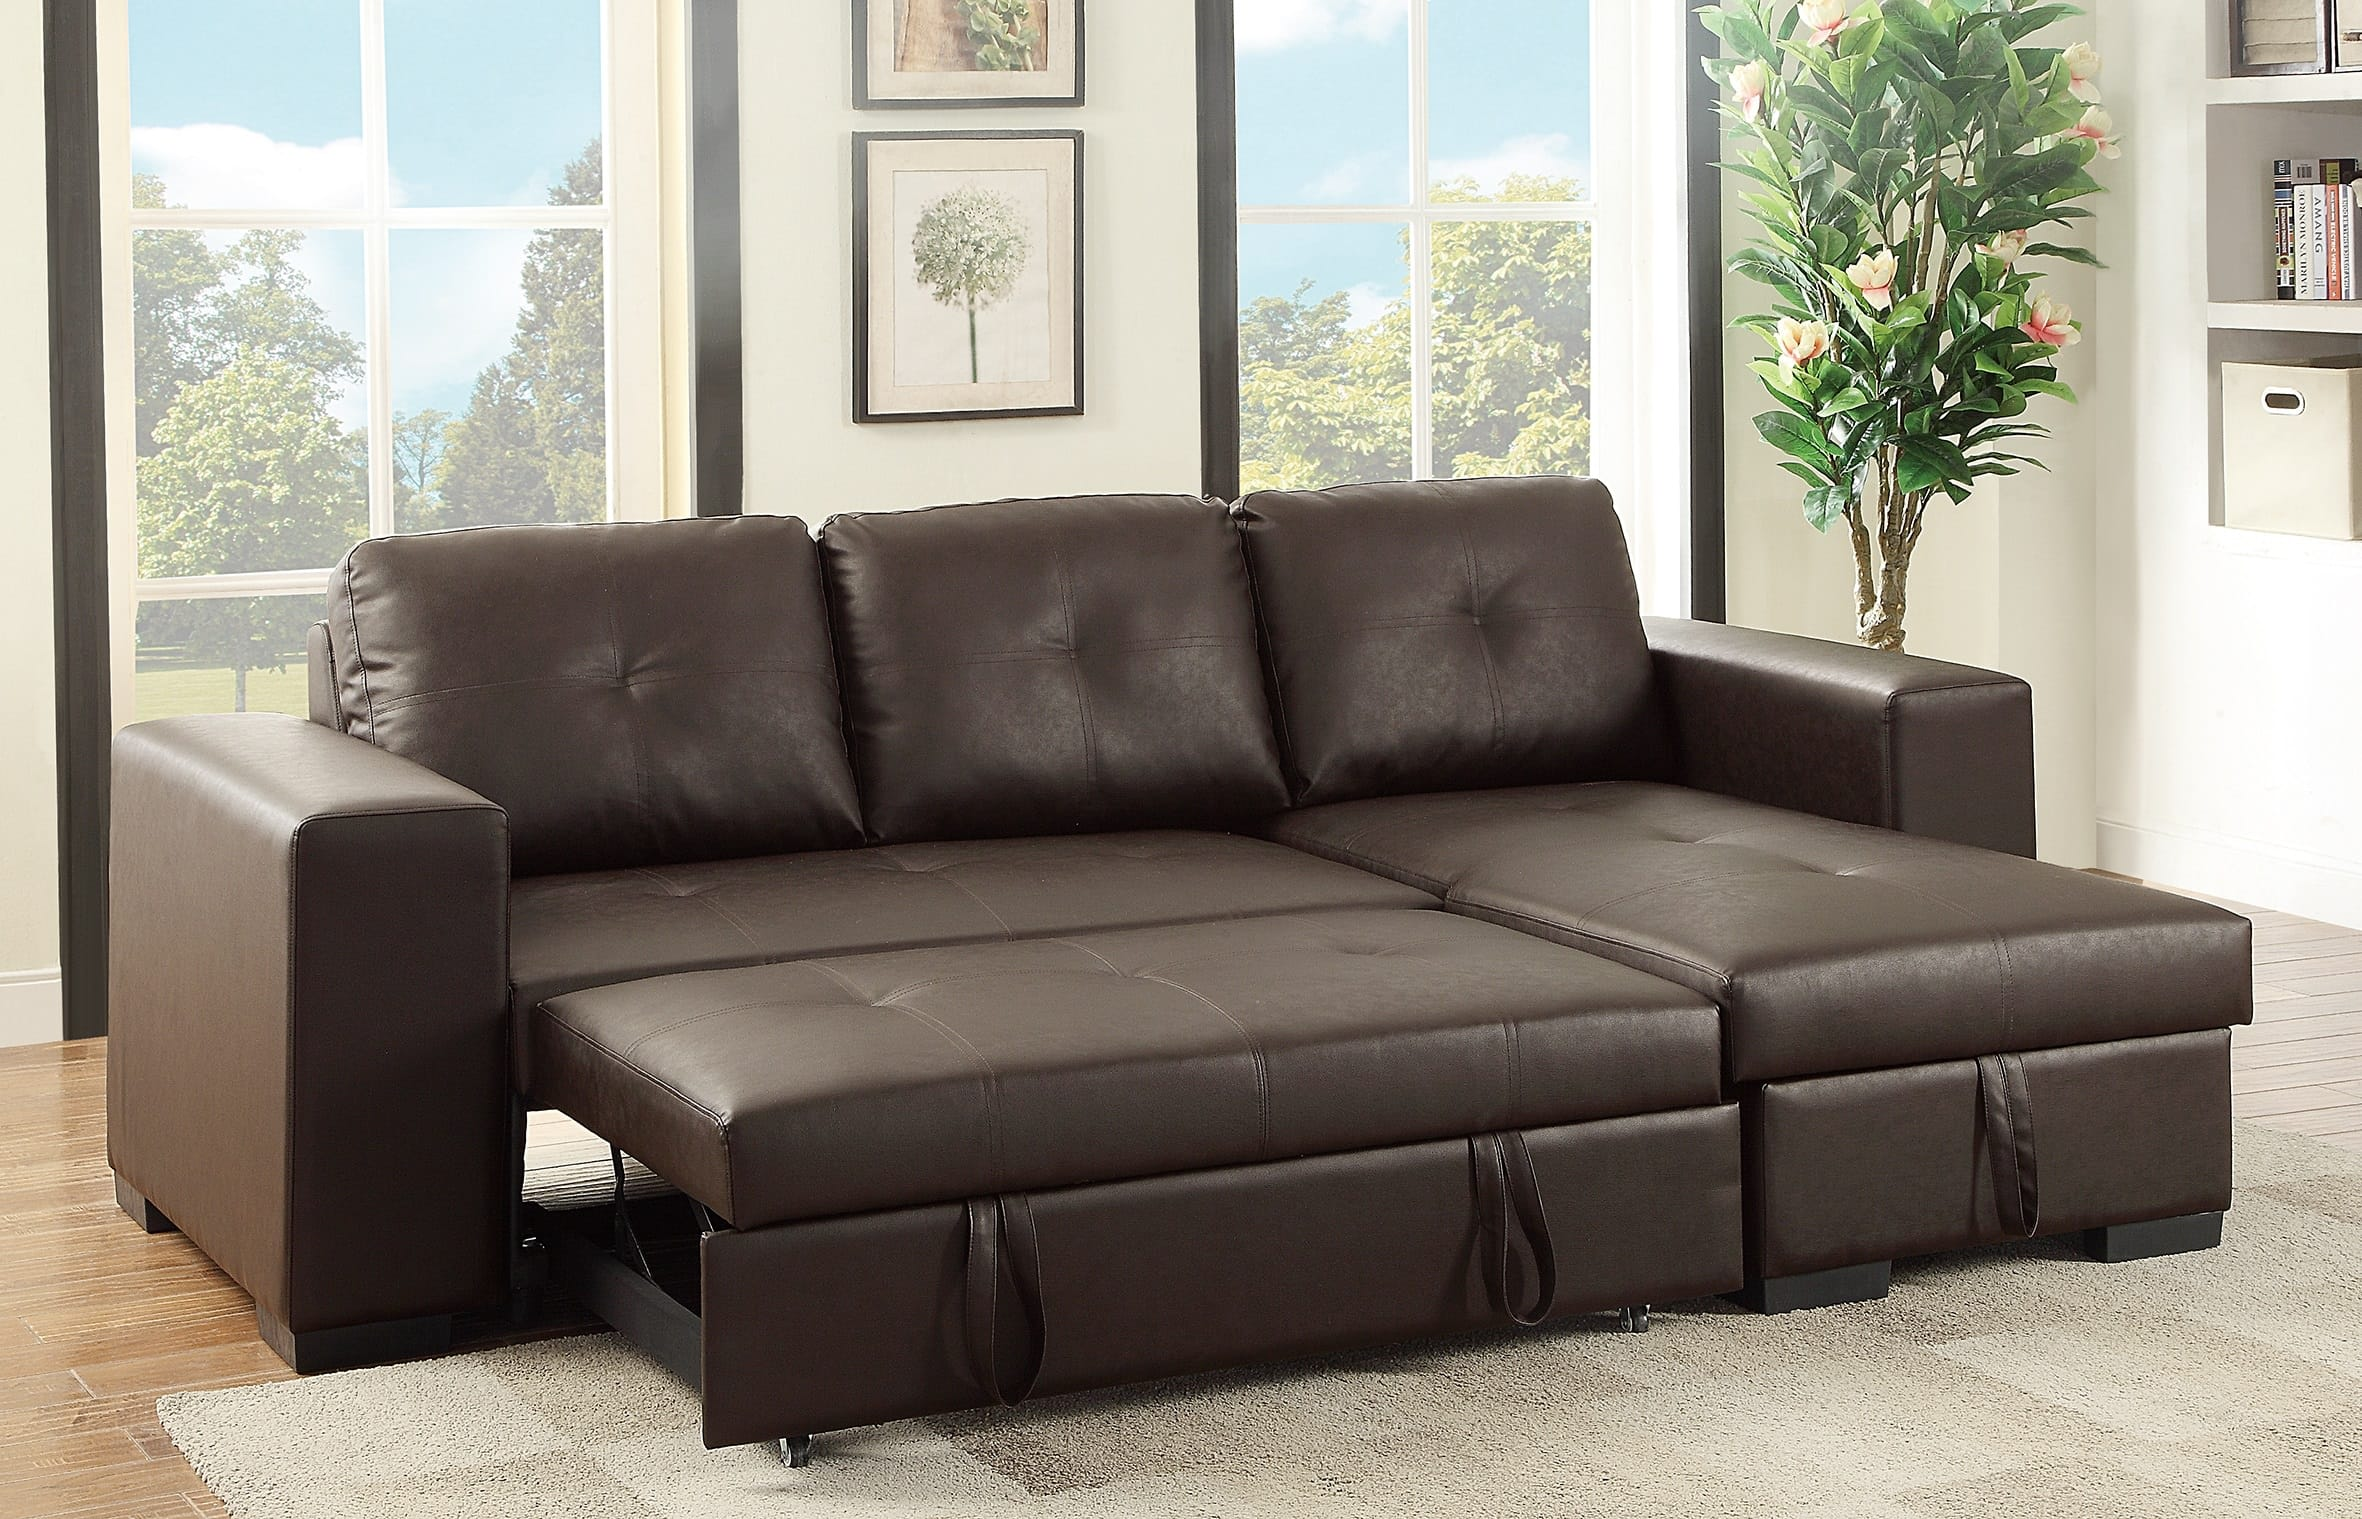 Ordinaire F6930 Espresso Convertible Sectional Sofa By Poundex (Poundex Associates  Corporation)